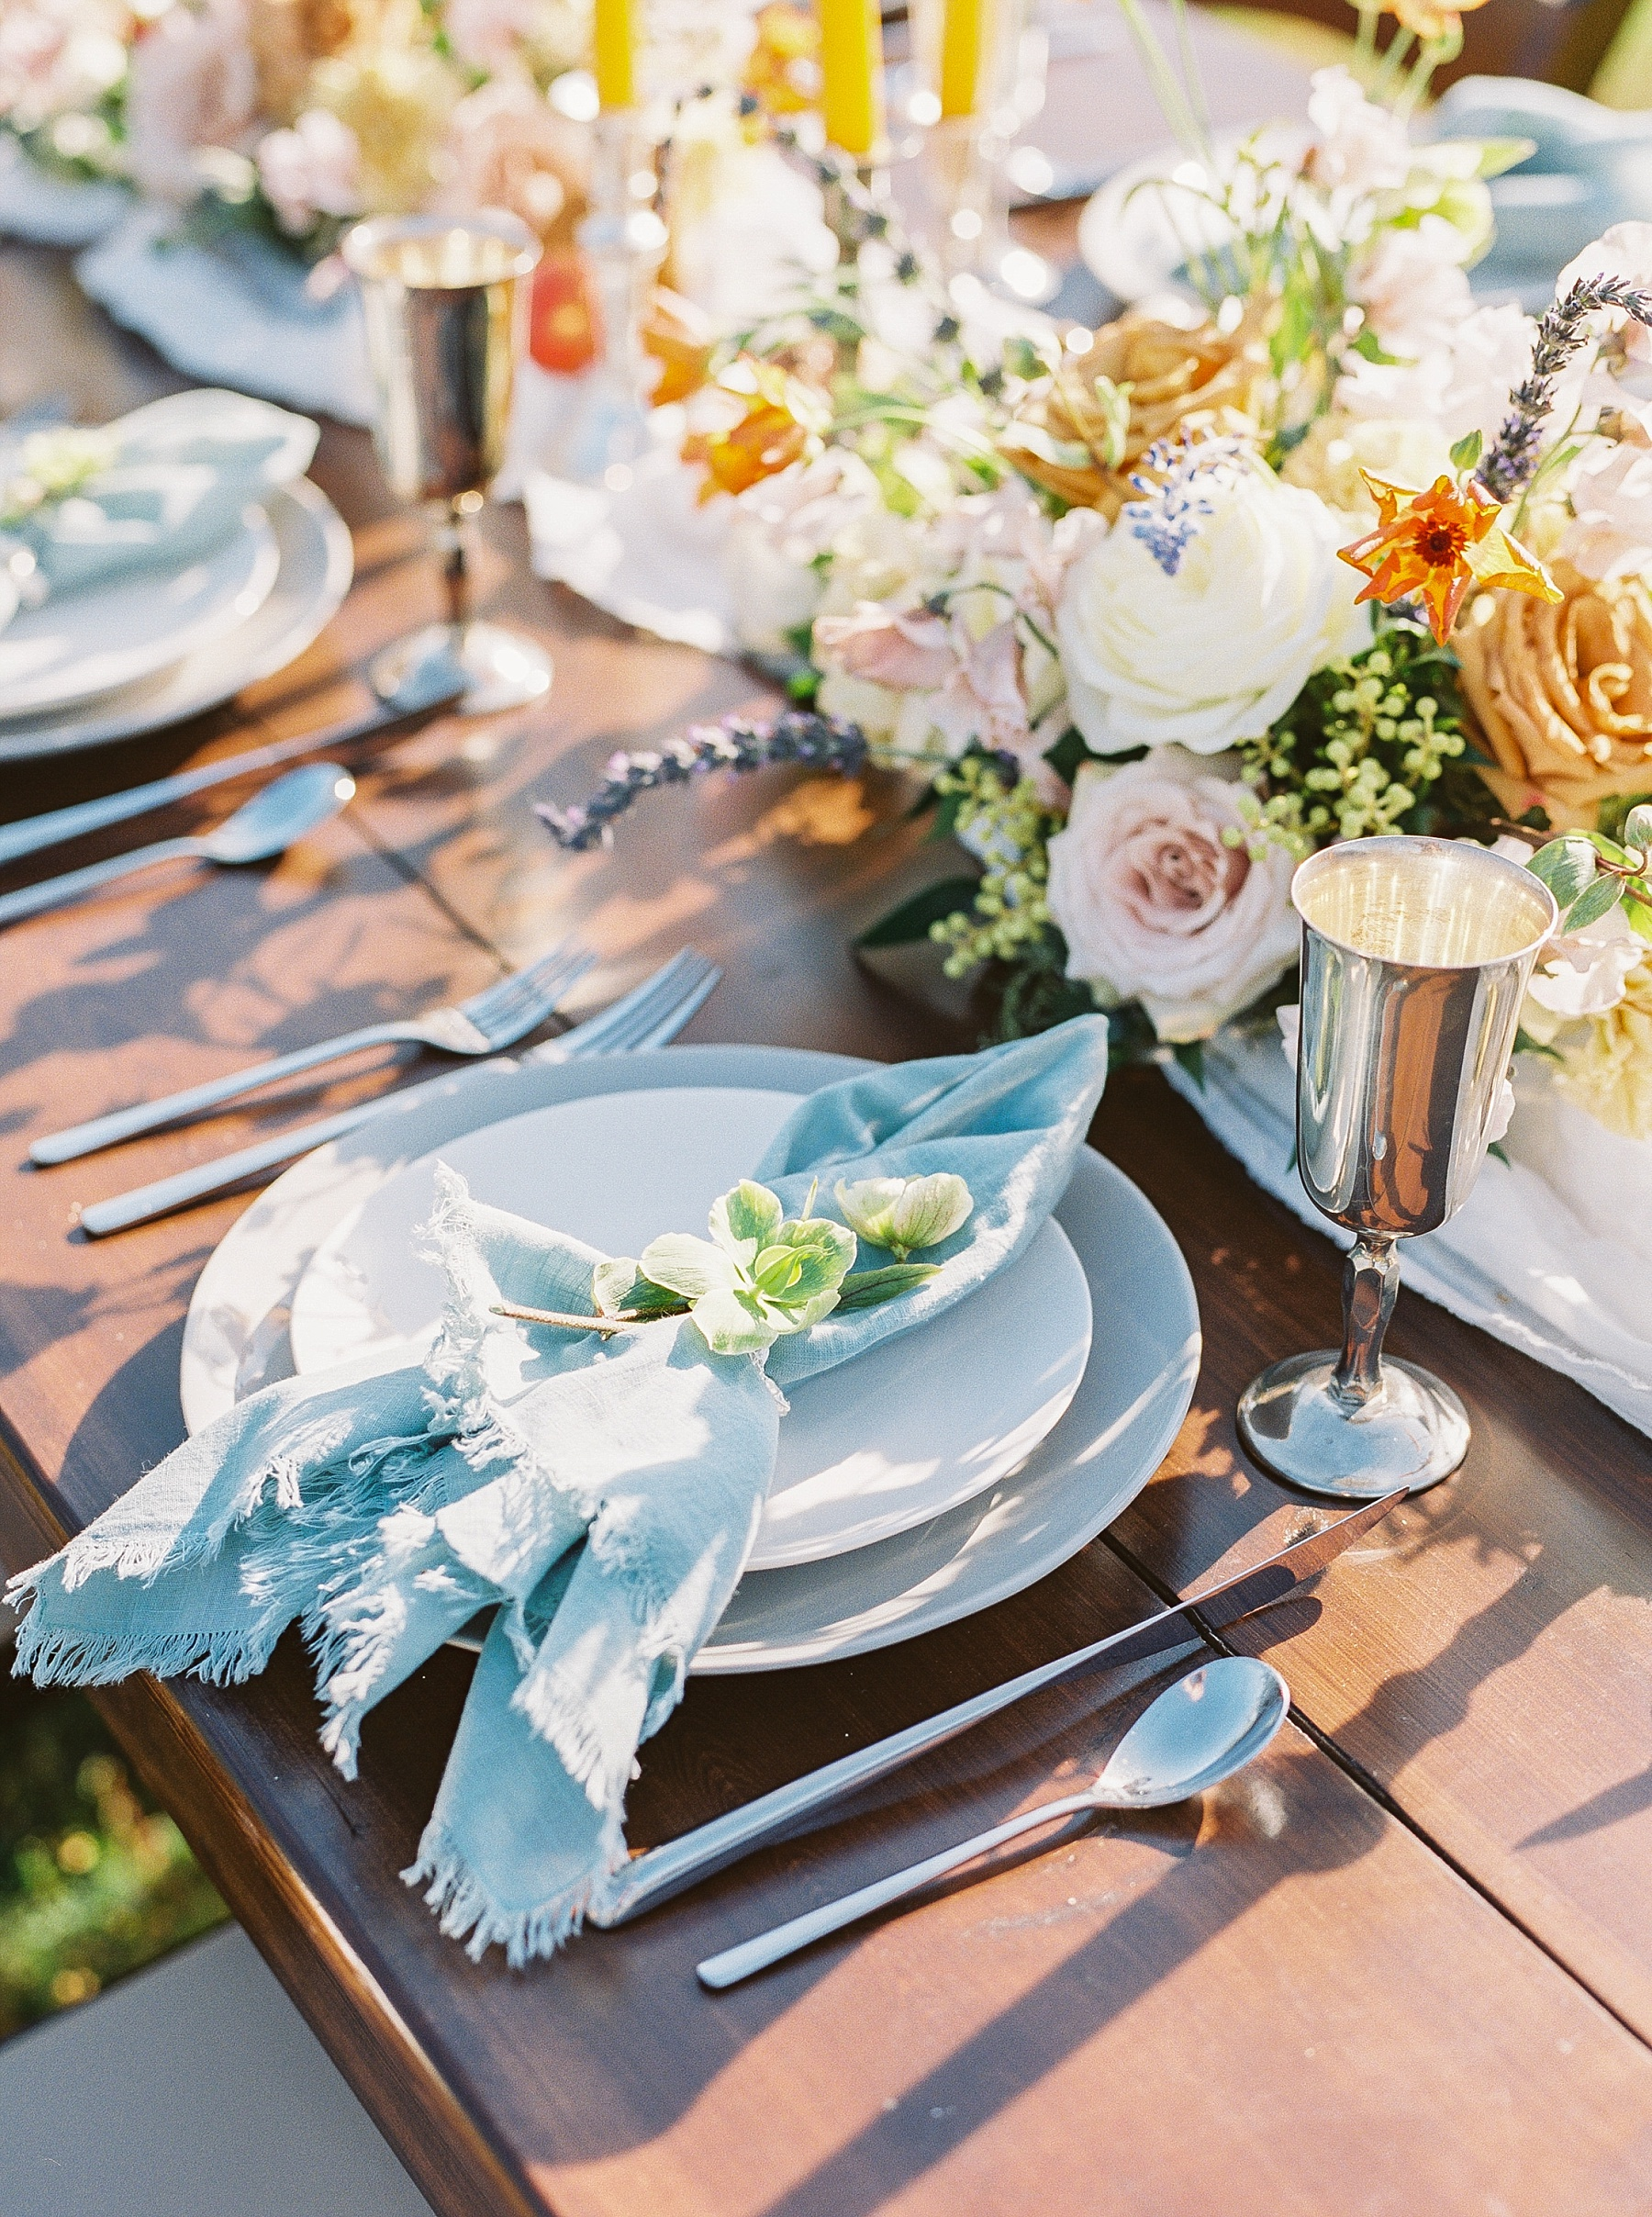 Intimate Spanish and French Inspired Destination Wedding with Lakeside Dinner Party at Dusk at Wildcliff by Kelsi Kliethermes Photography Best Missouri and Maui Wedding Photographer_0066.jpg